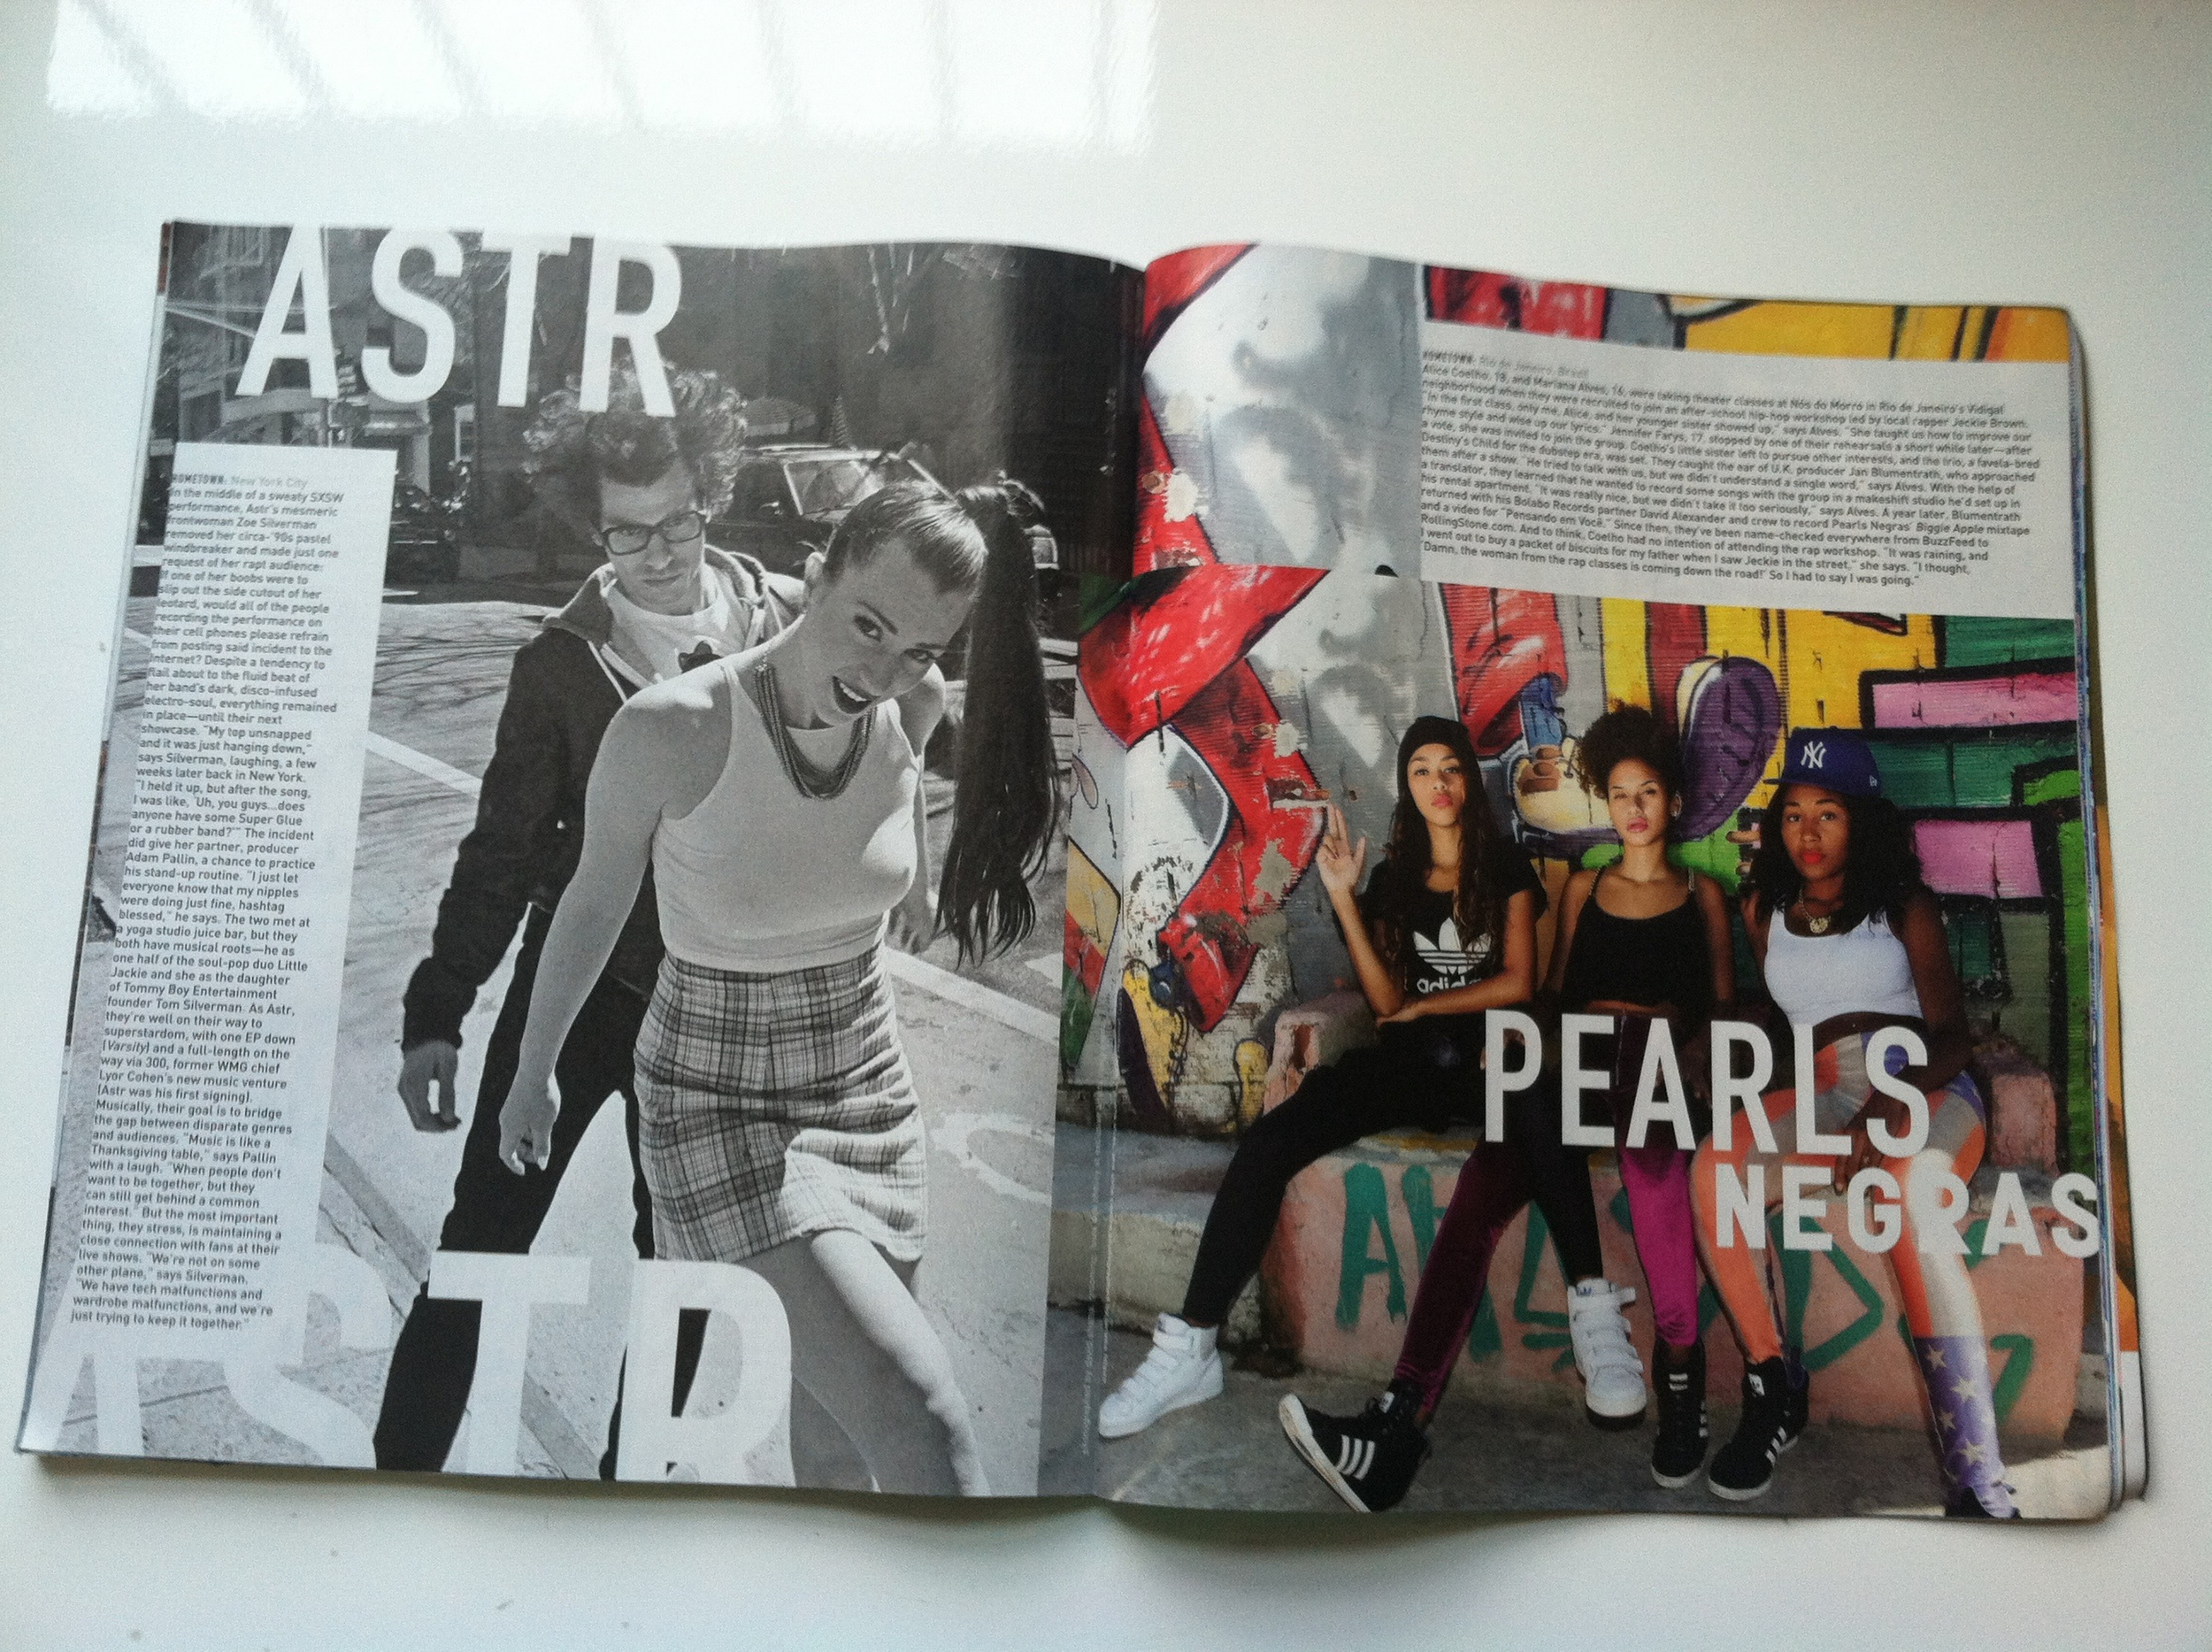 Astr photographed by David Shama. Pearls Negras photographed by Larissa Felsen.